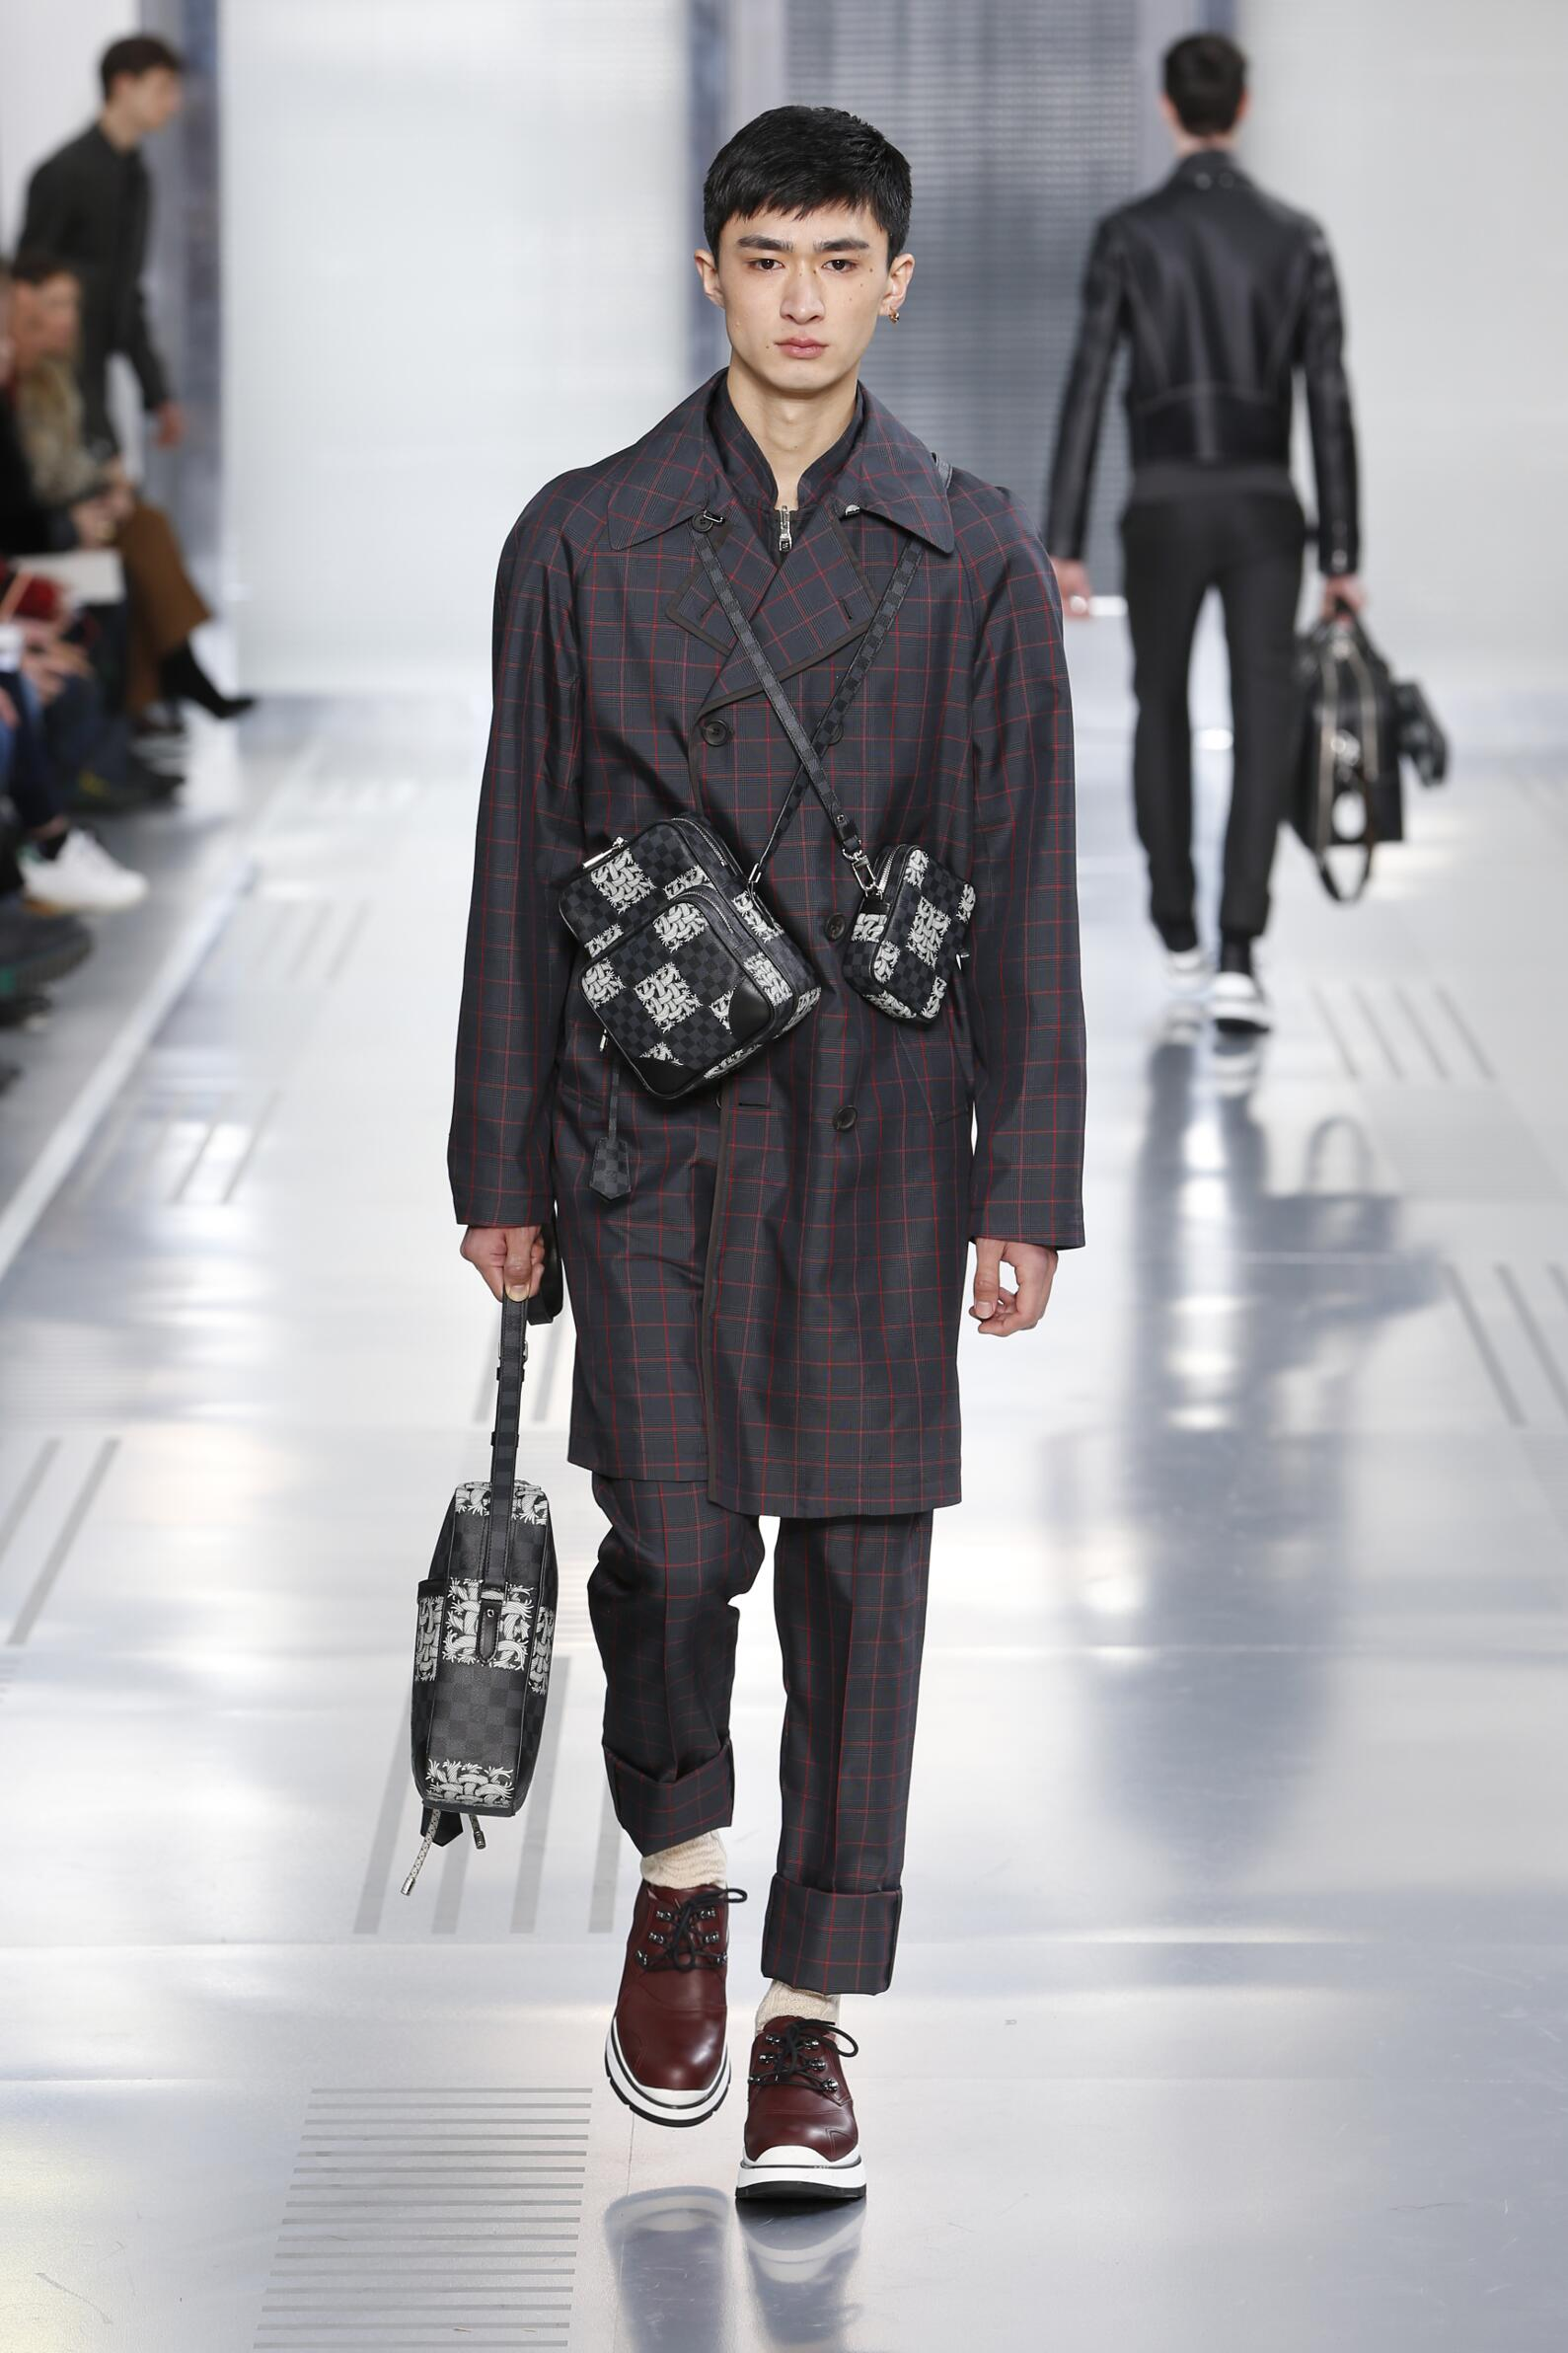 Louis Vuitton Collection Fall 2015 Catwalk